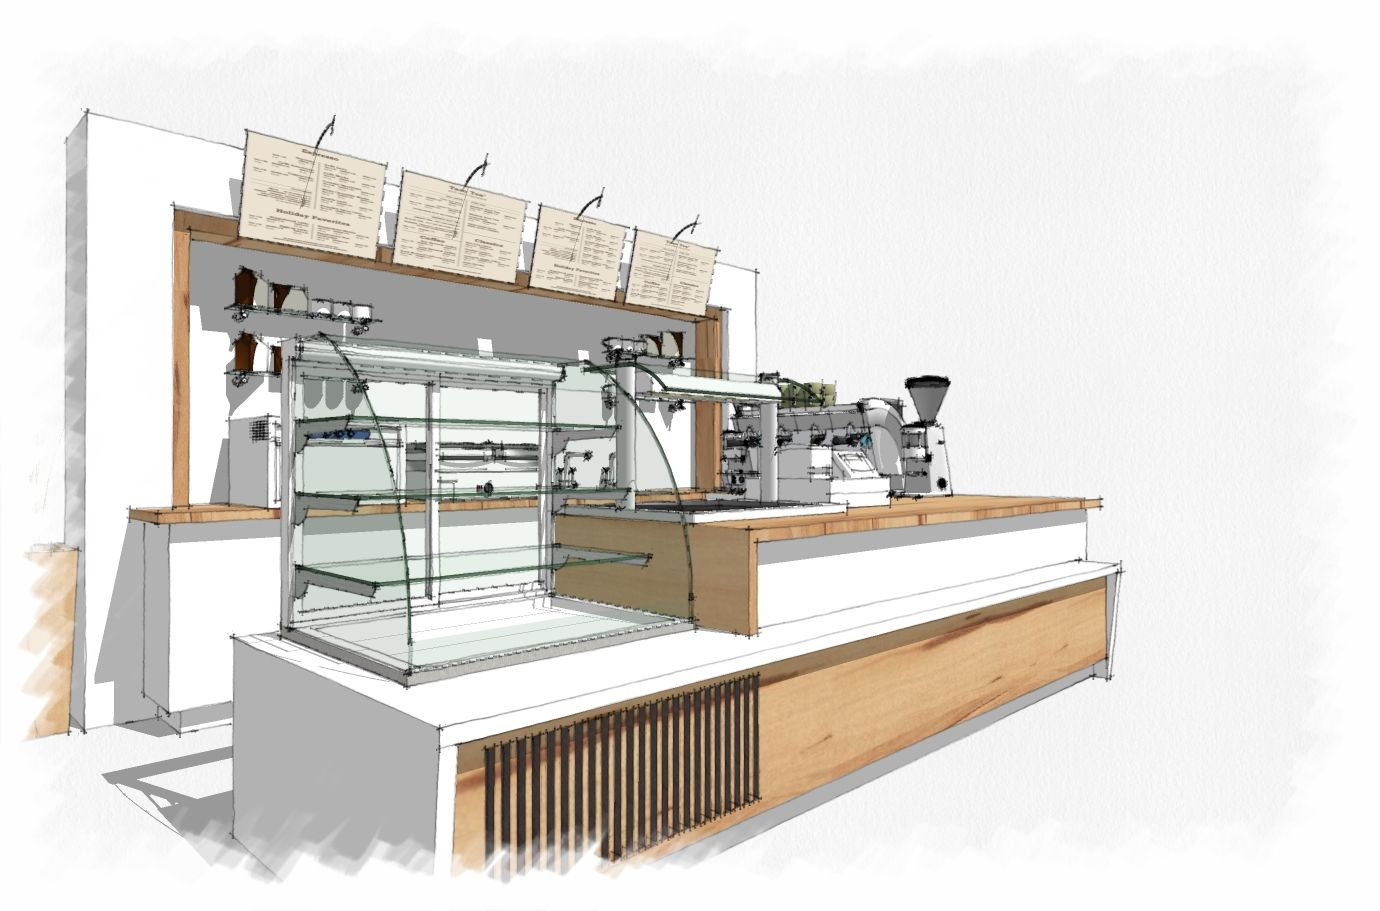 Coffee bar sketchup. Like the style of this Coffee bar